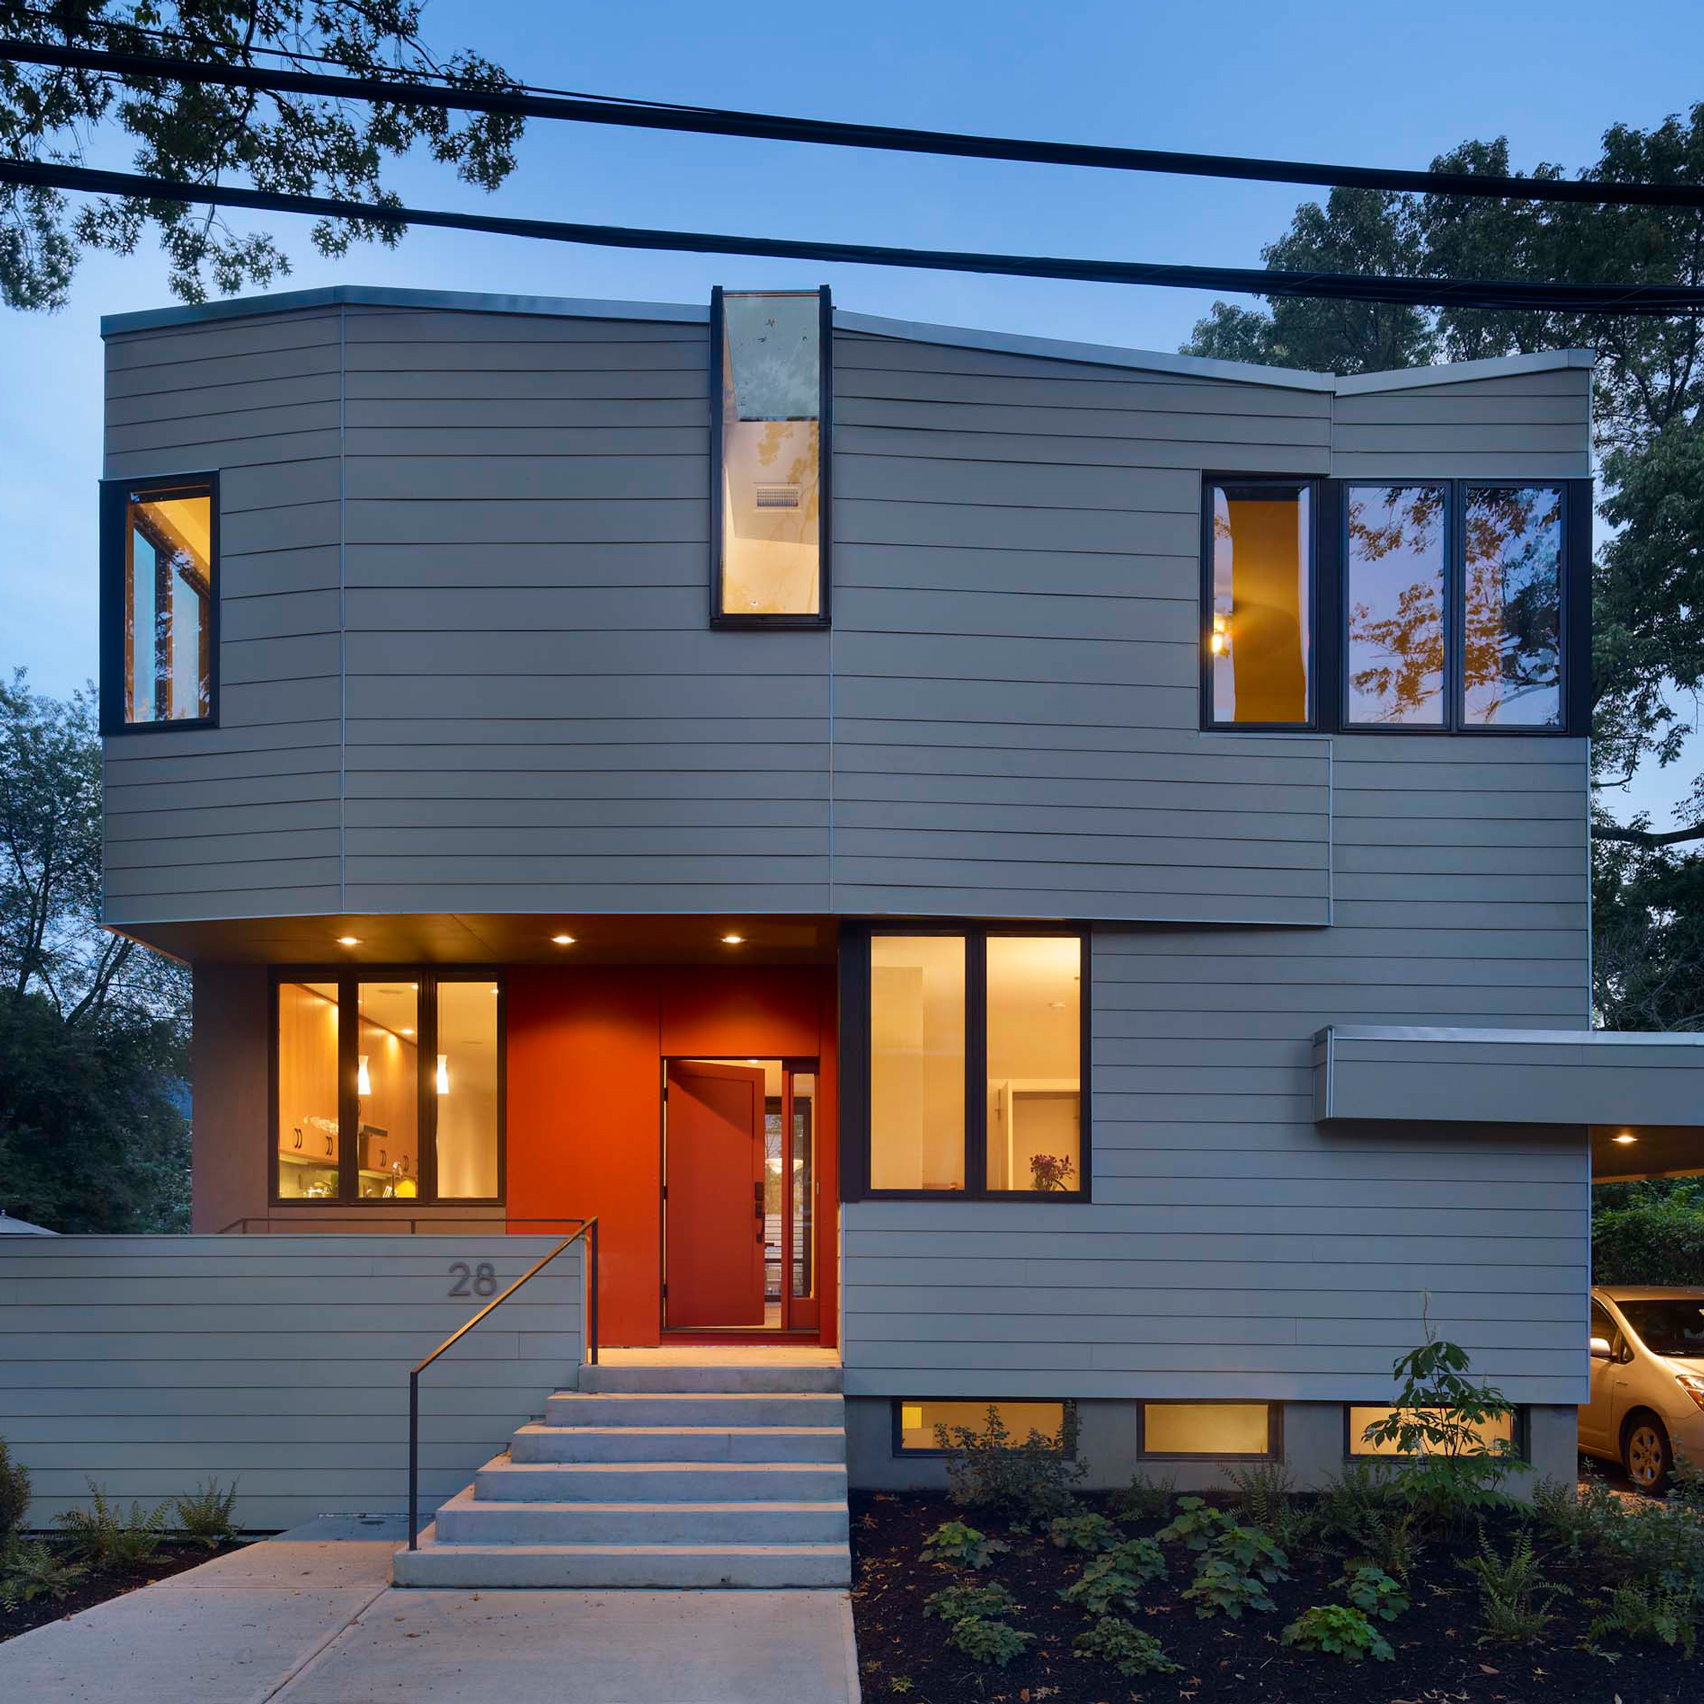 Prefab house in Princeton built in one day